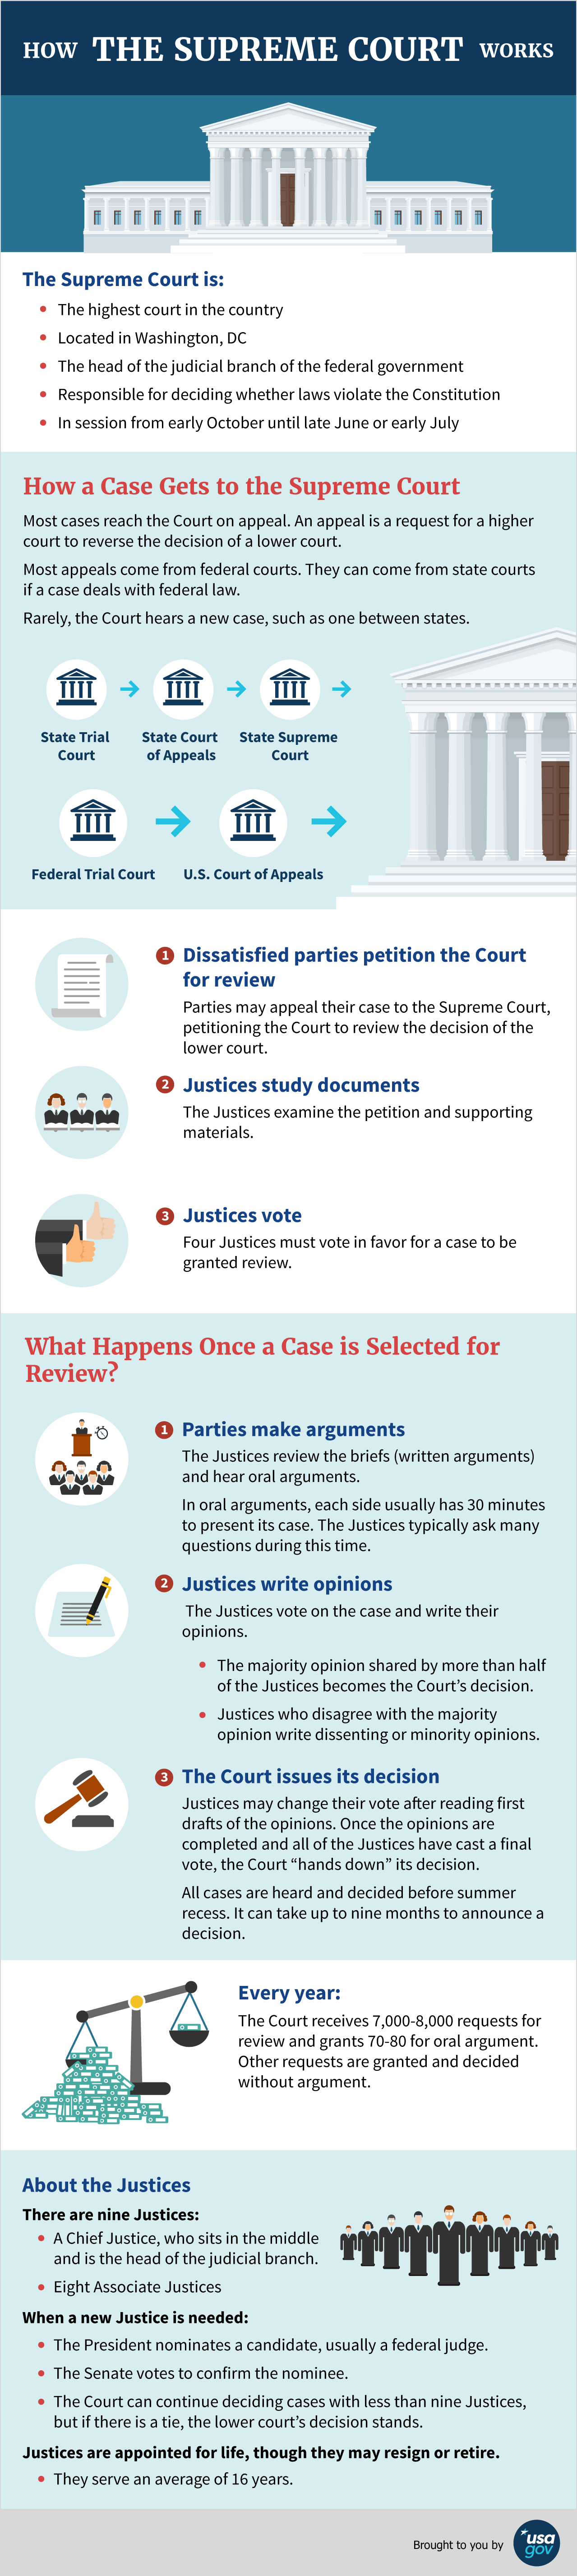 How the Supreme Court Works